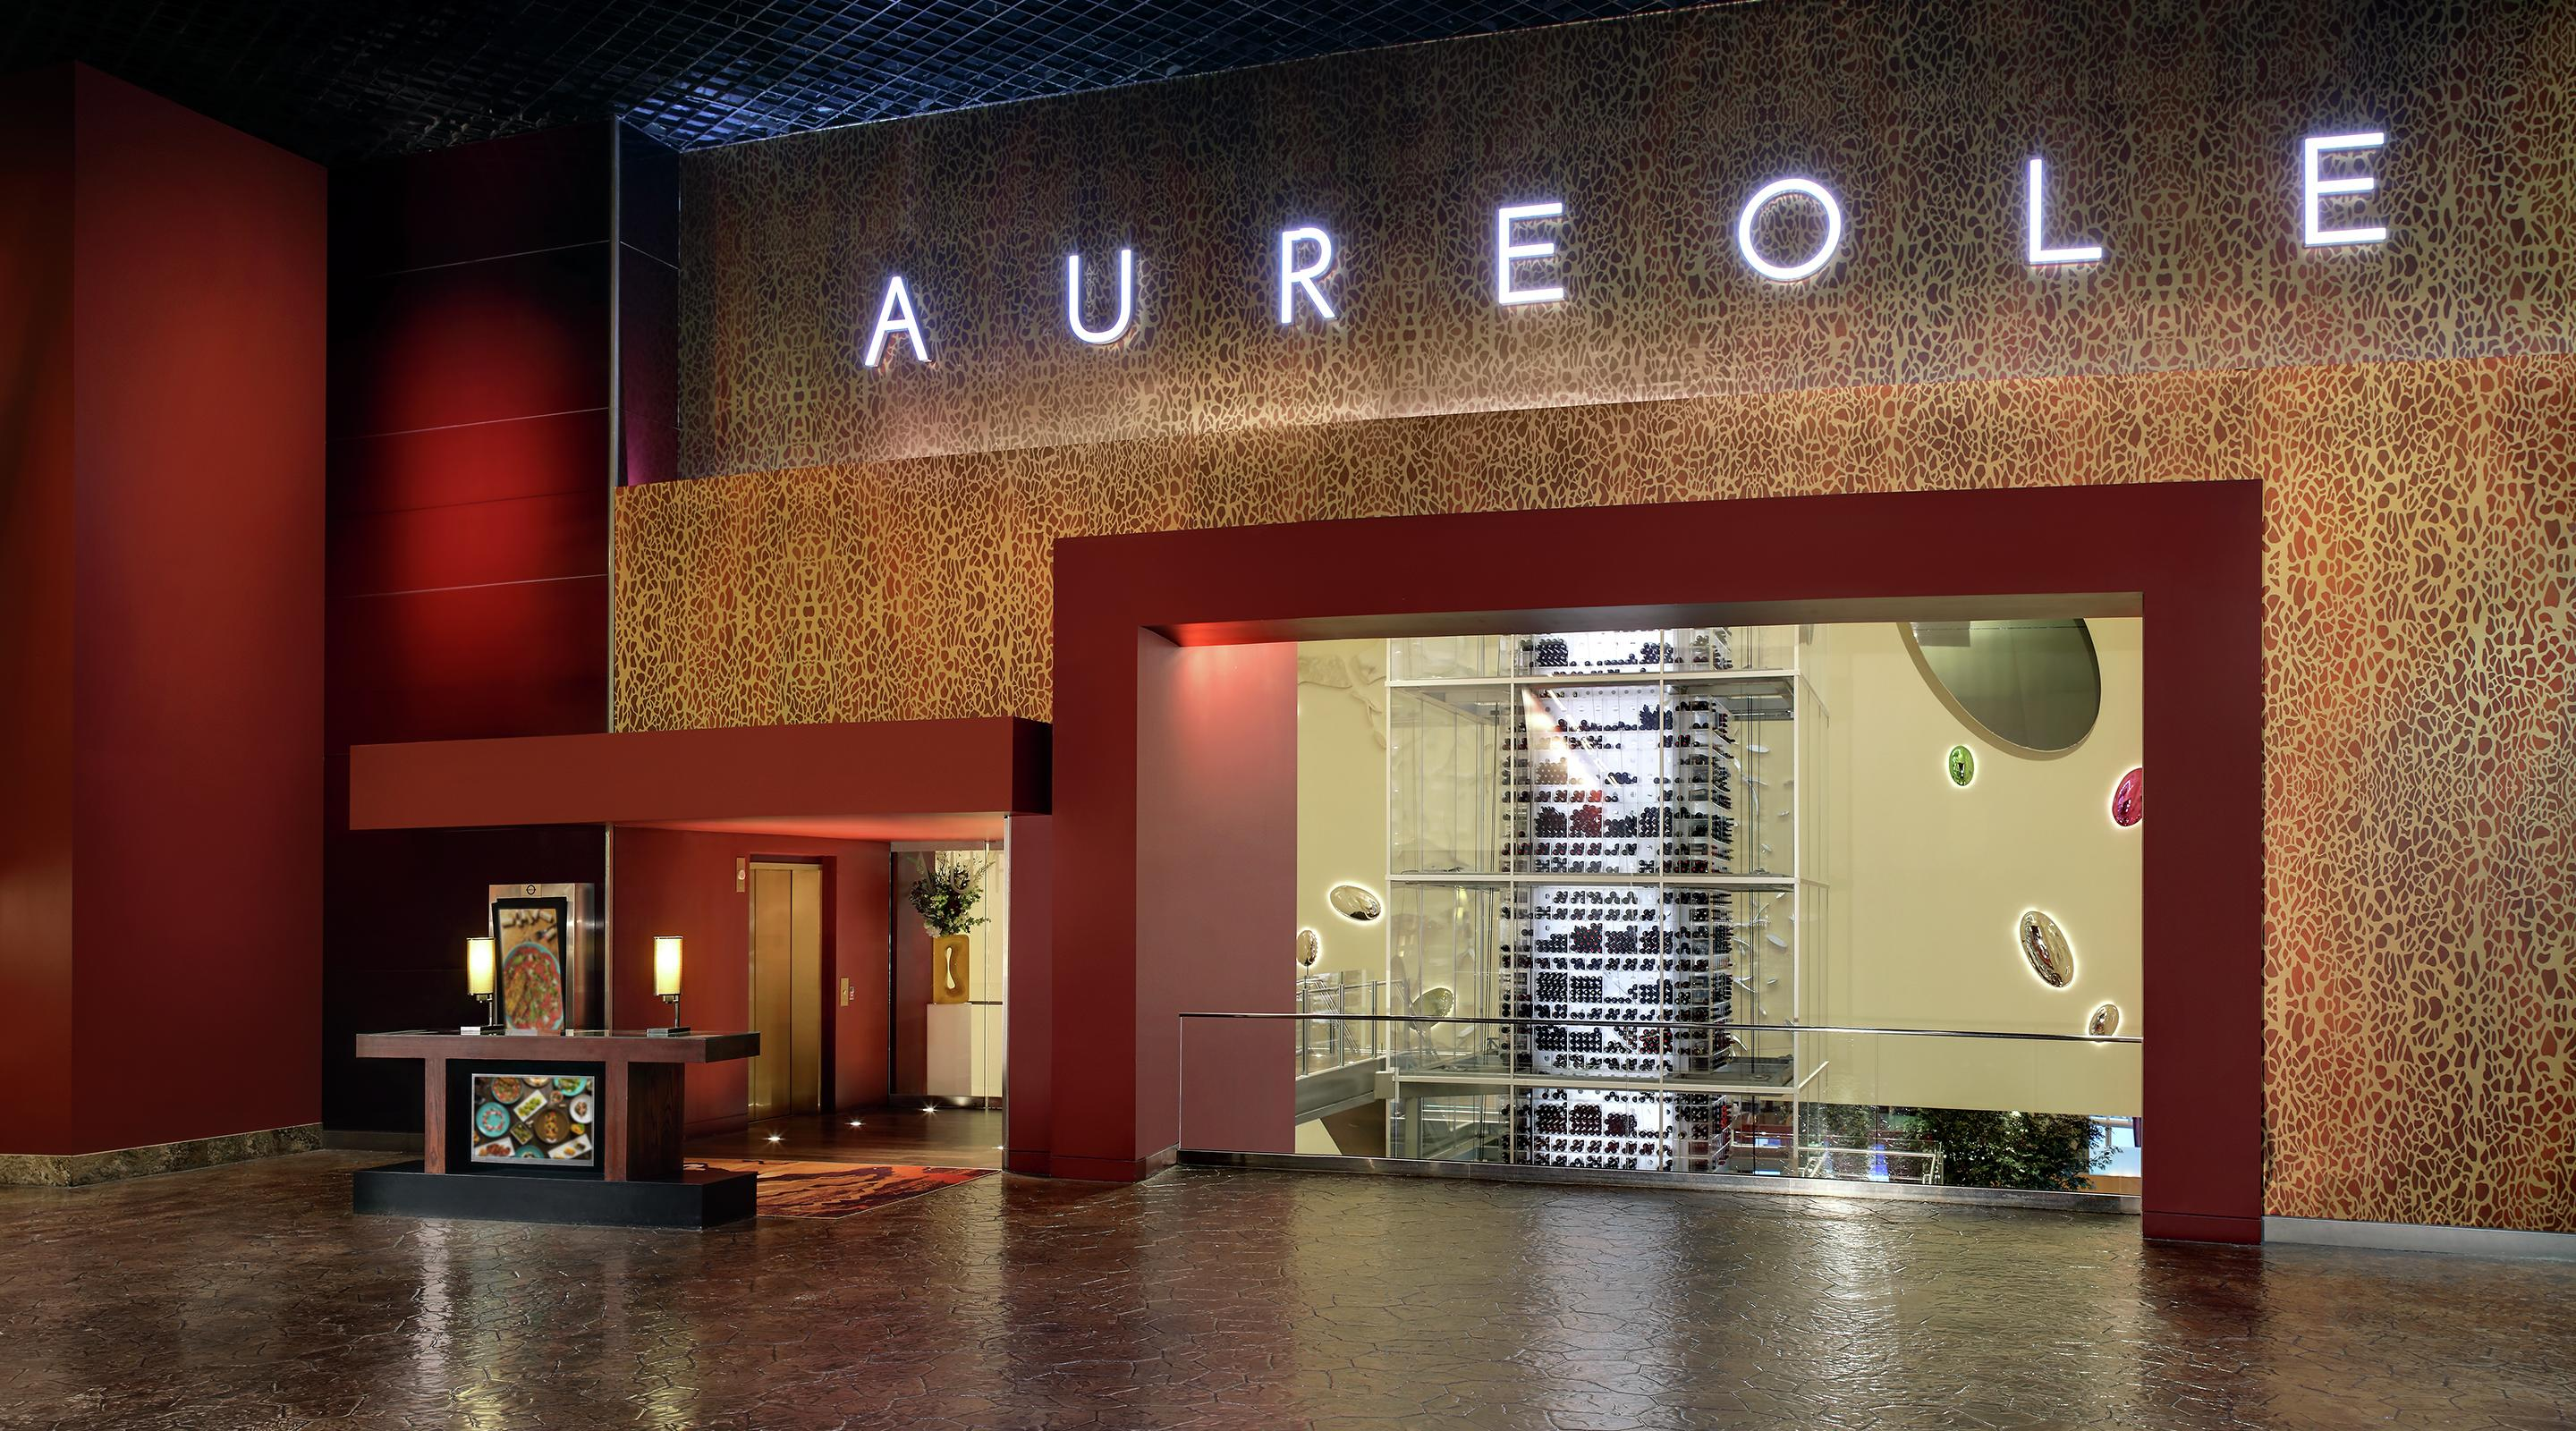 Aureole reimagined, redesigned space offers a new tasting table experience.